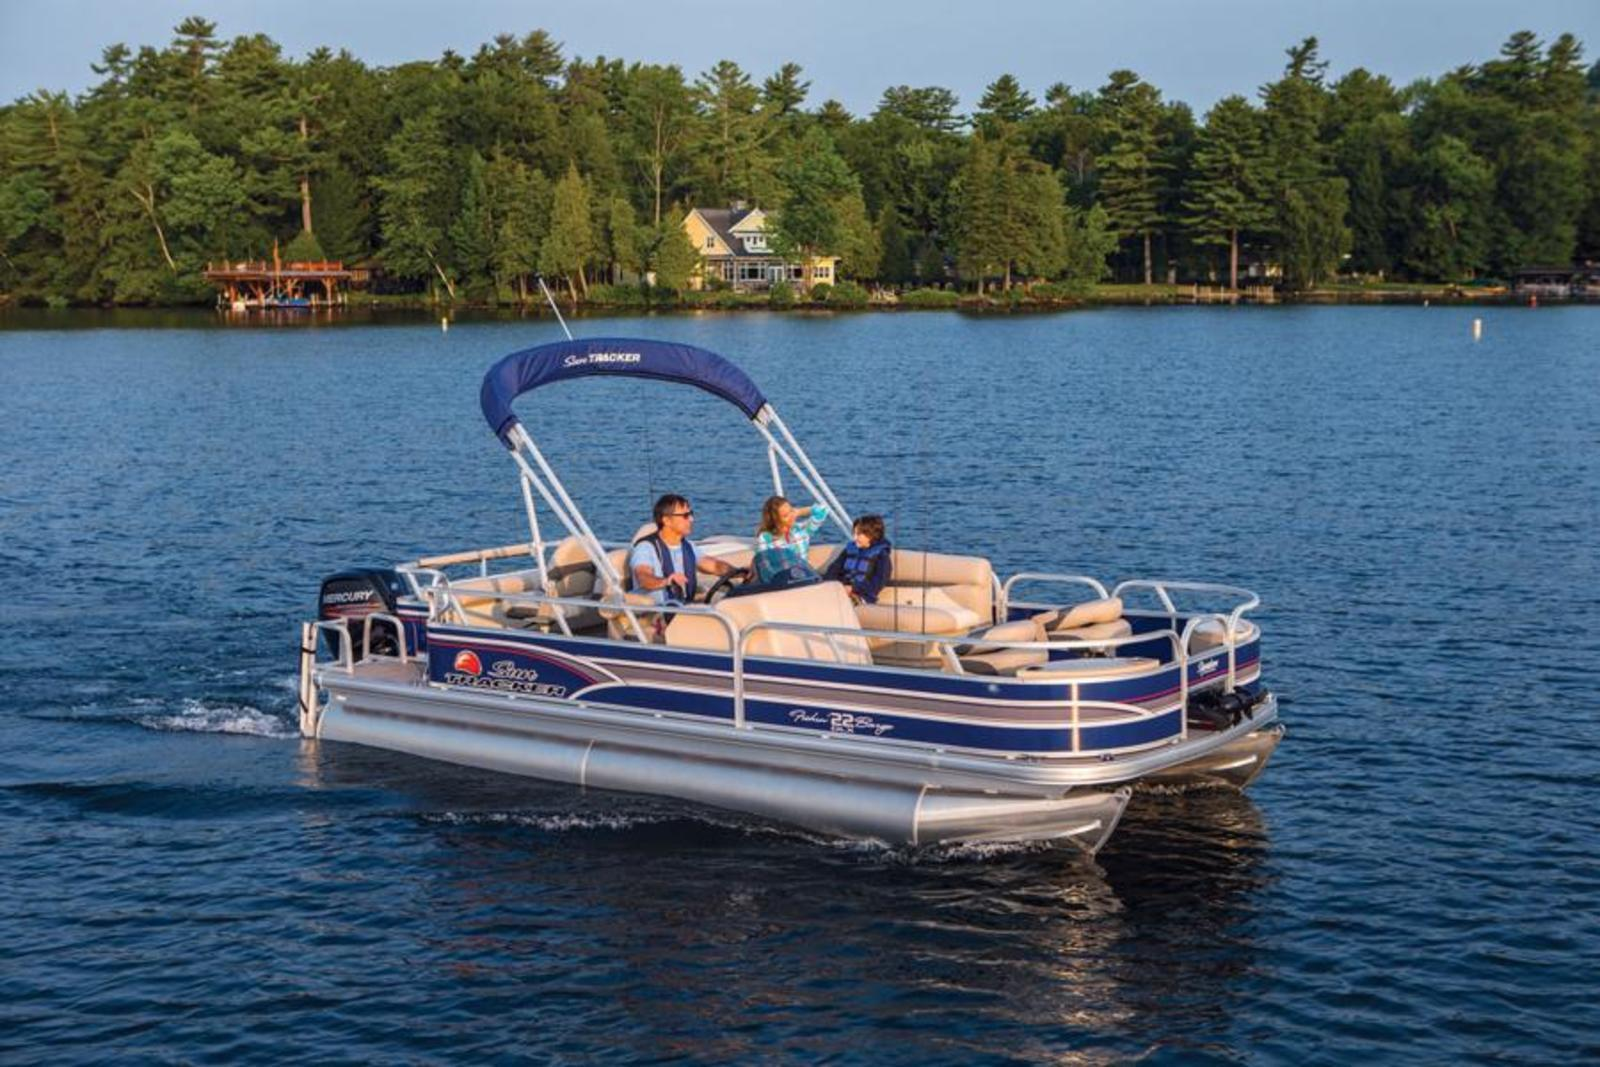 2015 SUN TRACKER FISHIN BARGE 22 DLX Review - Top Speed